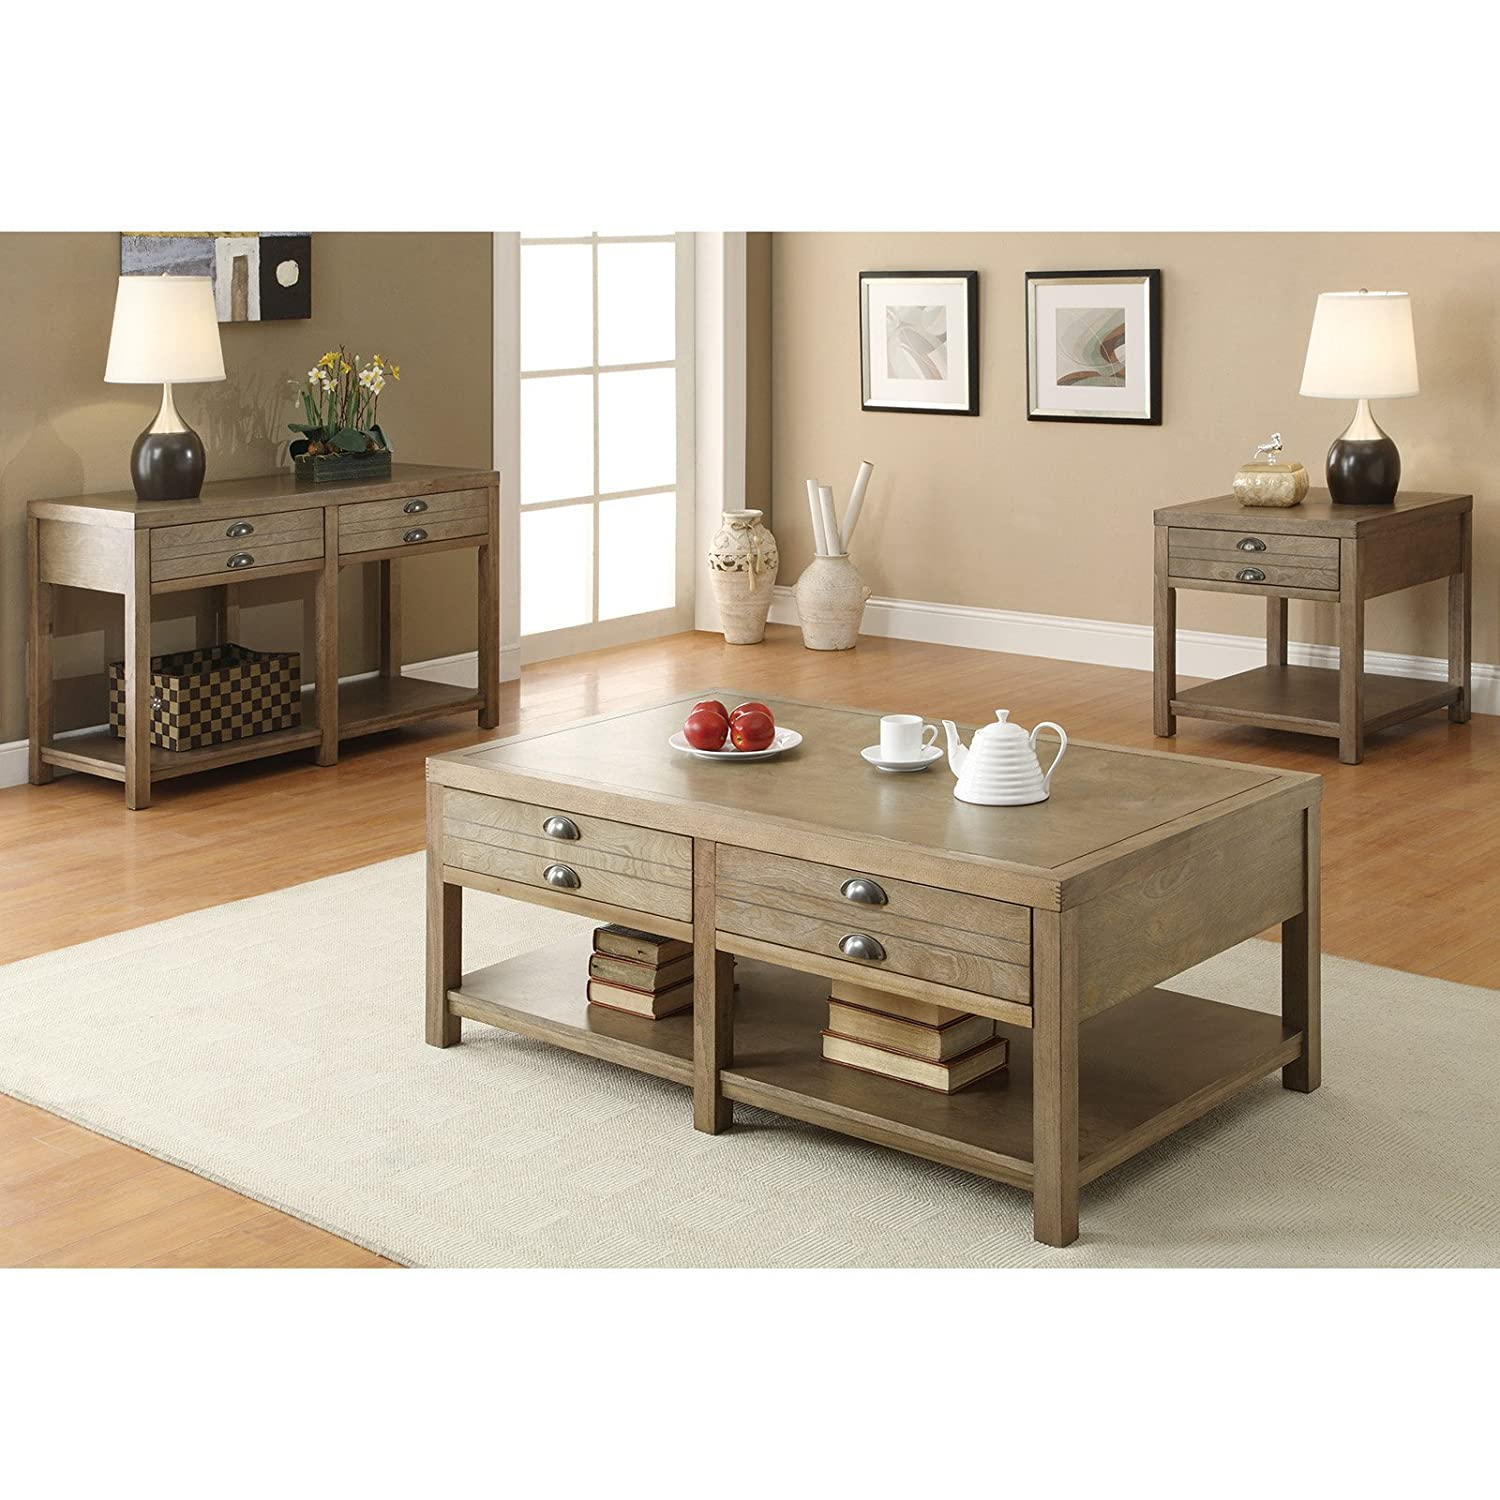 Amazon Com Coaster Home Furnishings Casual Coffee Table Light Oak Kitchen Dining